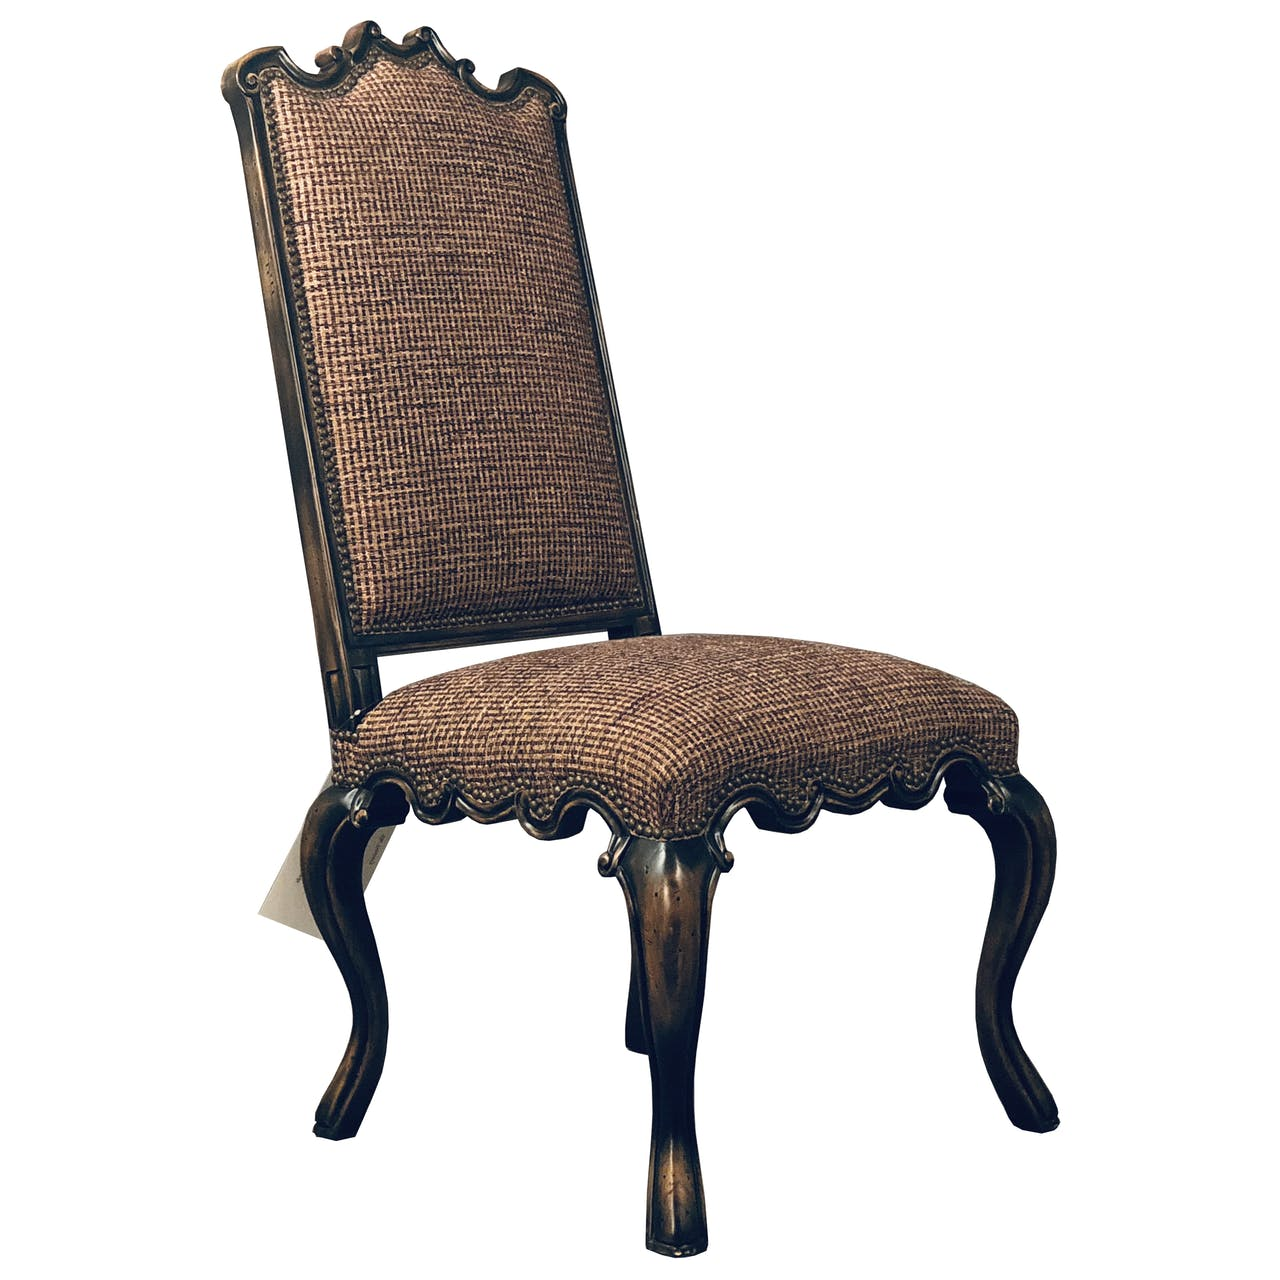 Peachy An Ornate Dining Chair In Tweed Fabric Lamtechconsult Wood Chair Design Ideas Lamtechconsultcom